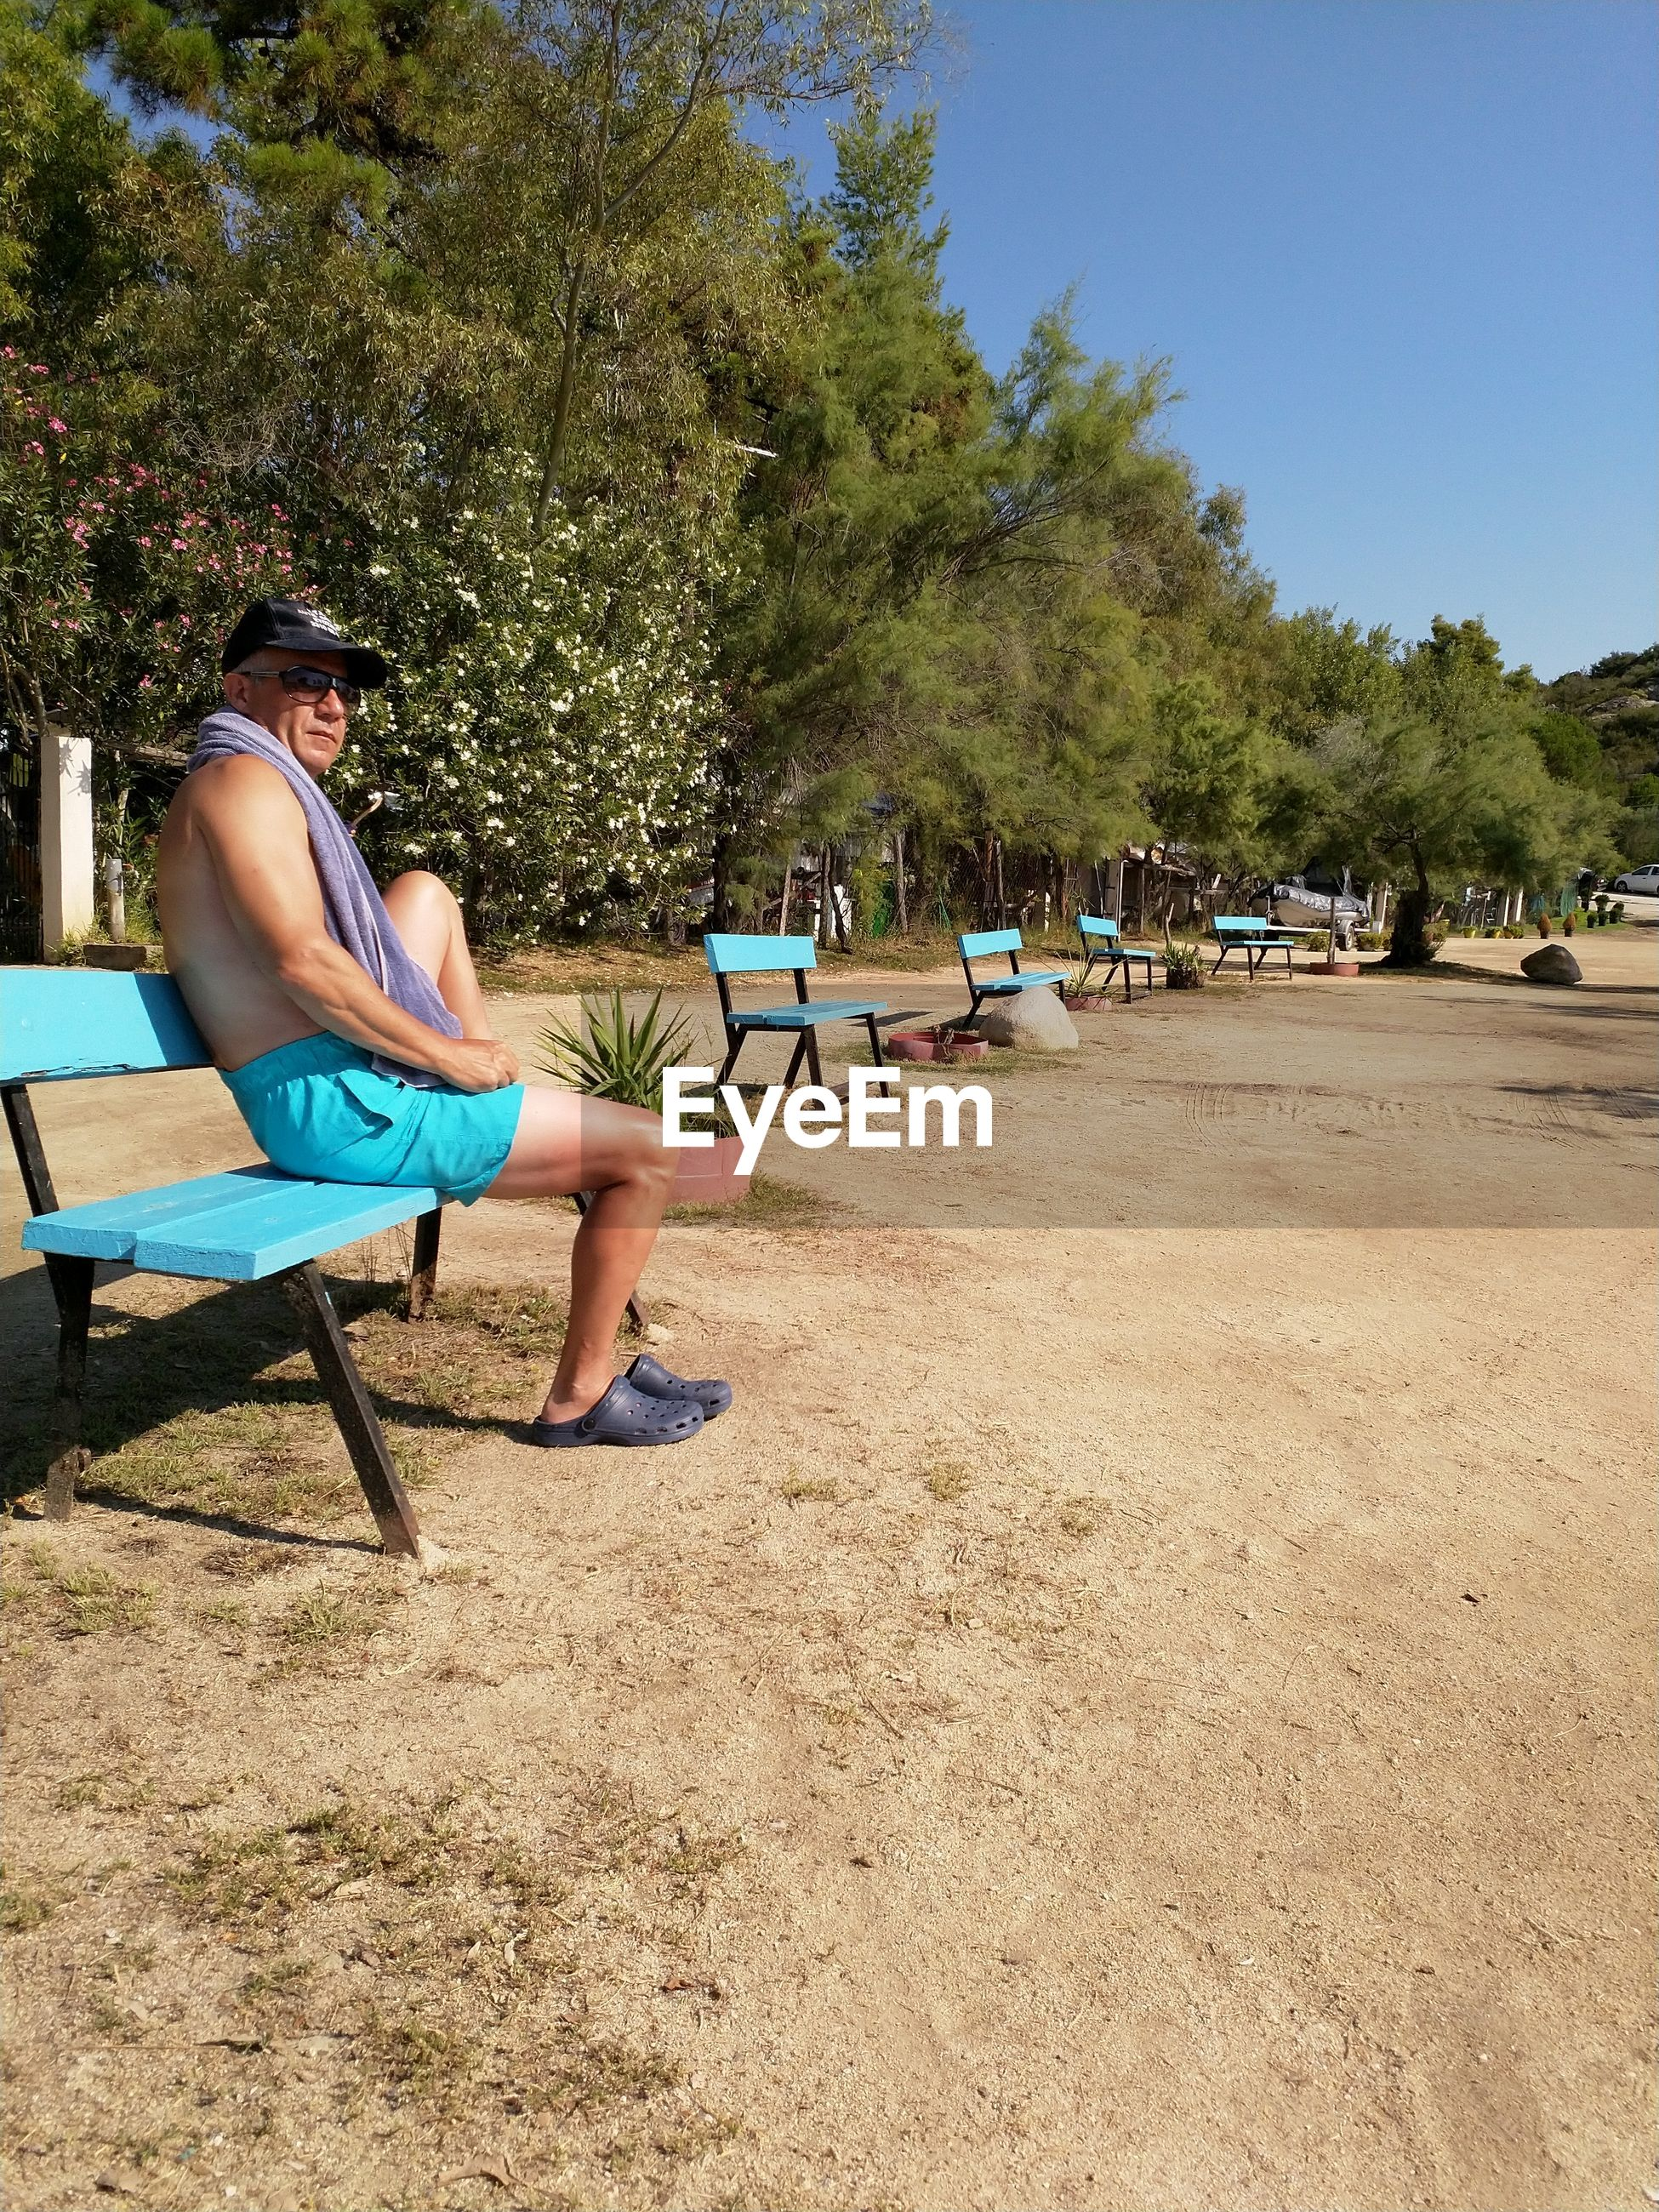 tree, sitting, plant, seat, real people, day, full length, chair, leisure activity, nature, lifestyles, men, casual clothing, people, sunlight, incidental people, relaxation, growth, bench, land, outdoors